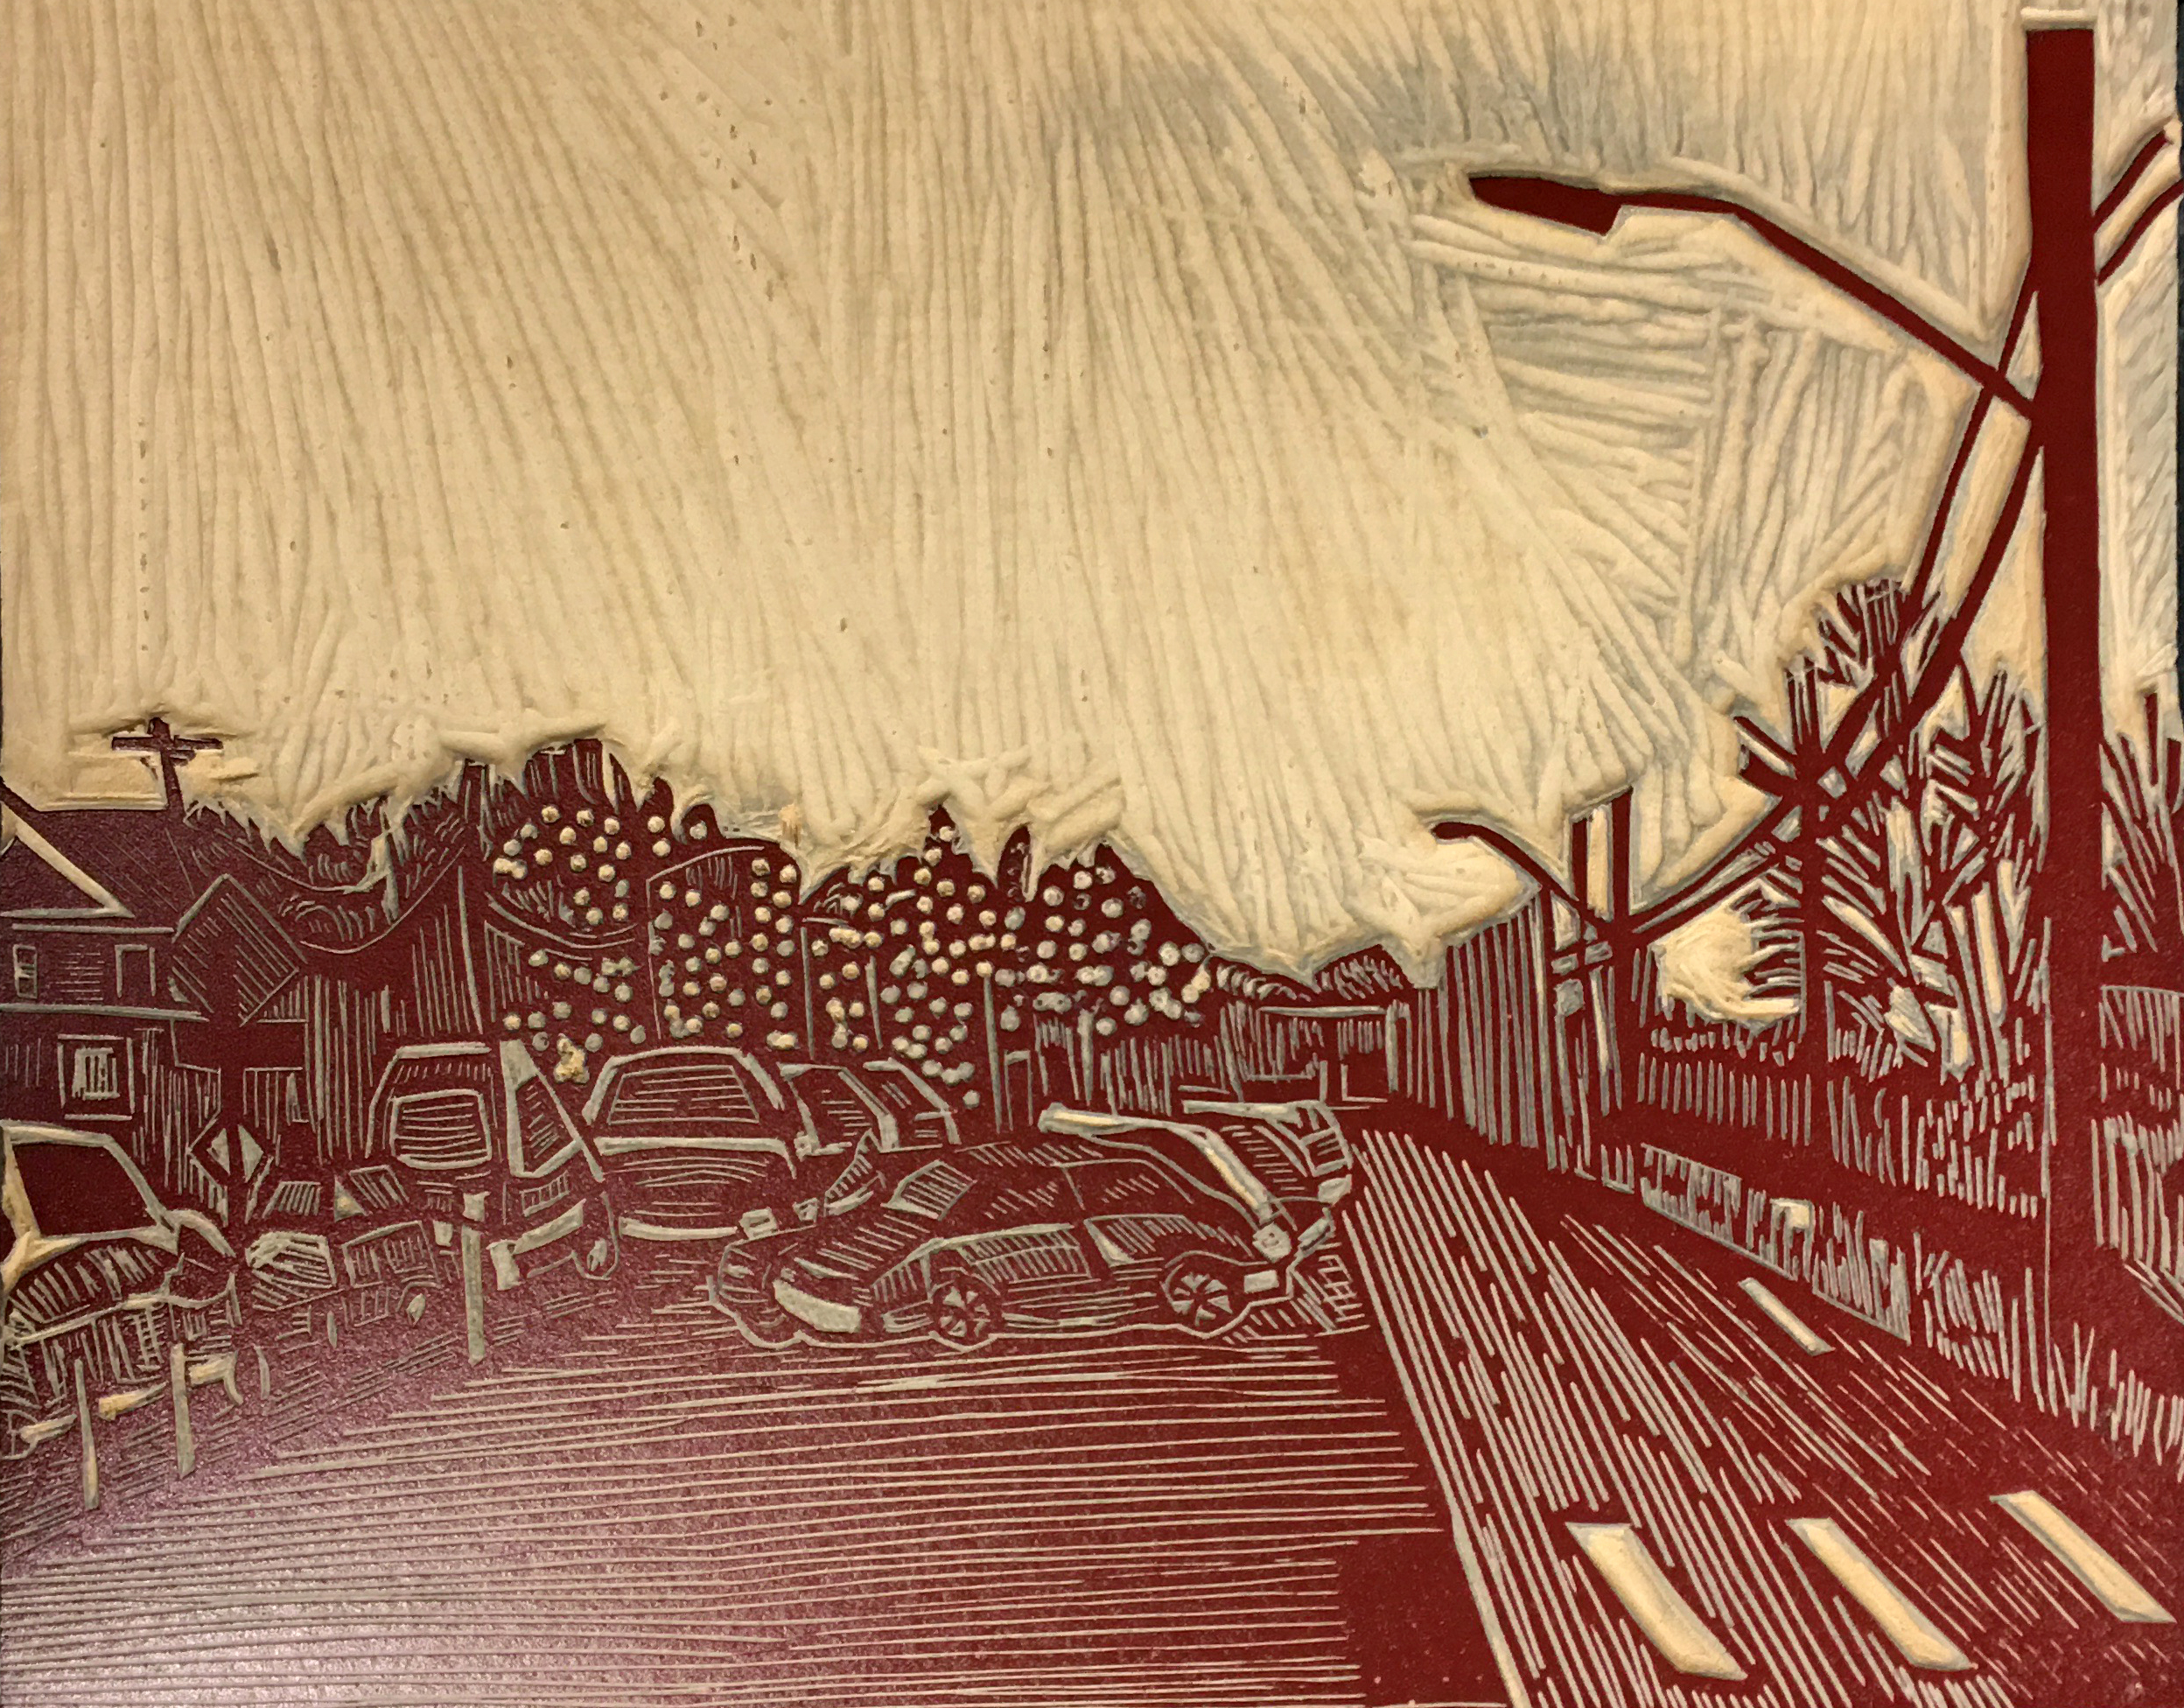 An inked and cut linoleum block. The drawing depicts parked cars, trees, houses, and a street.